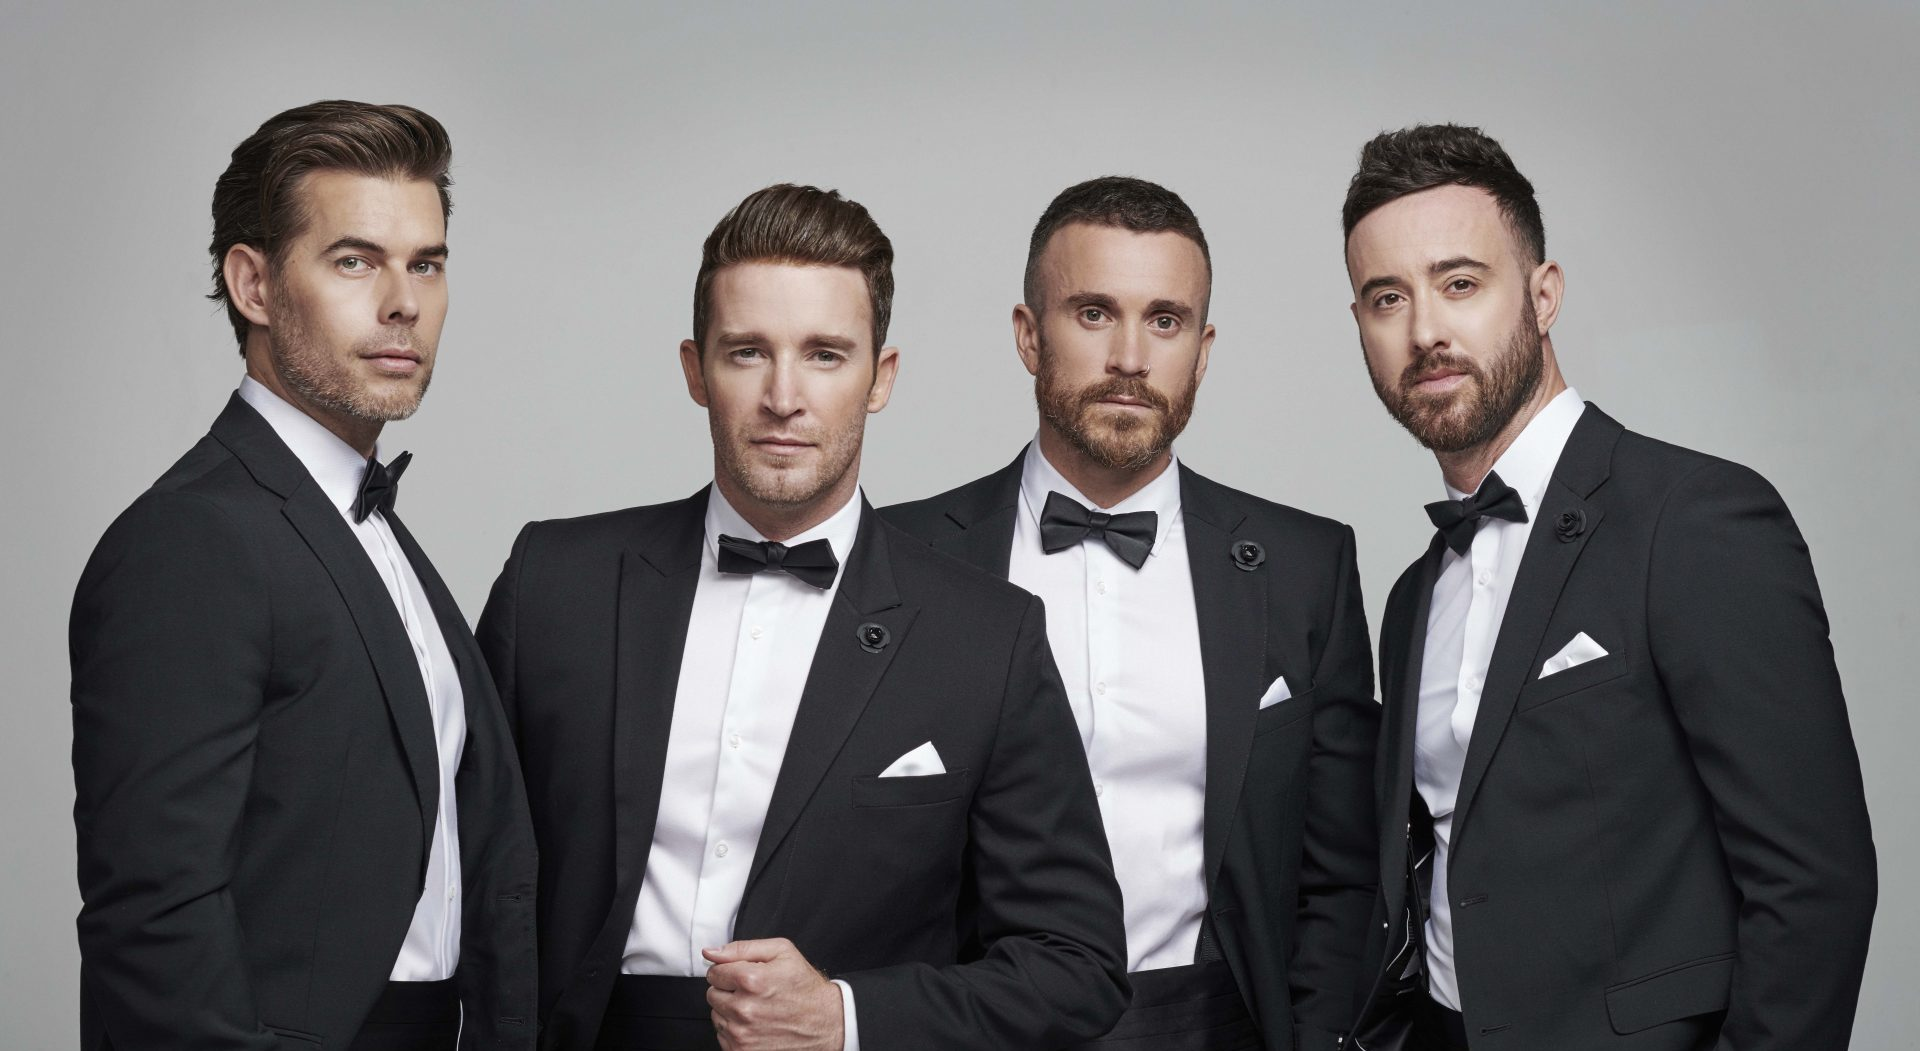 The Overtones - Mike Crawshaw, Jay James, Darren Everest and Mark Franks